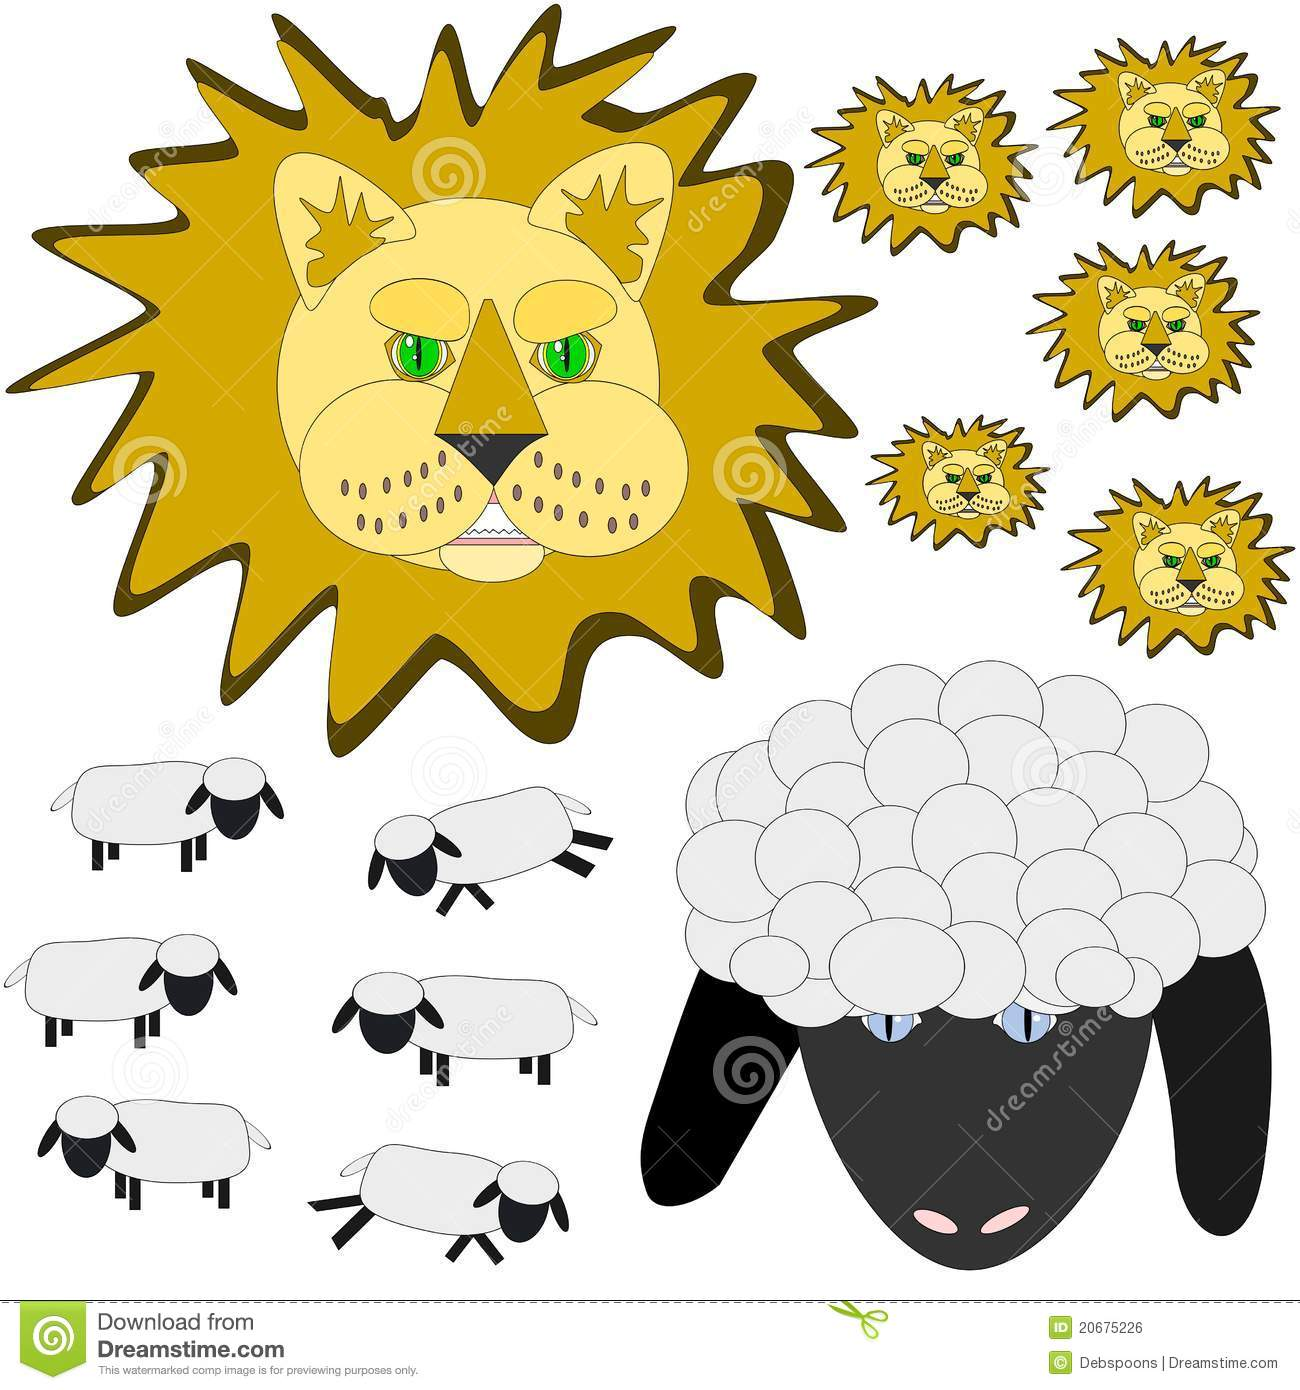 March lion and lamb stock vector. Illustration of.